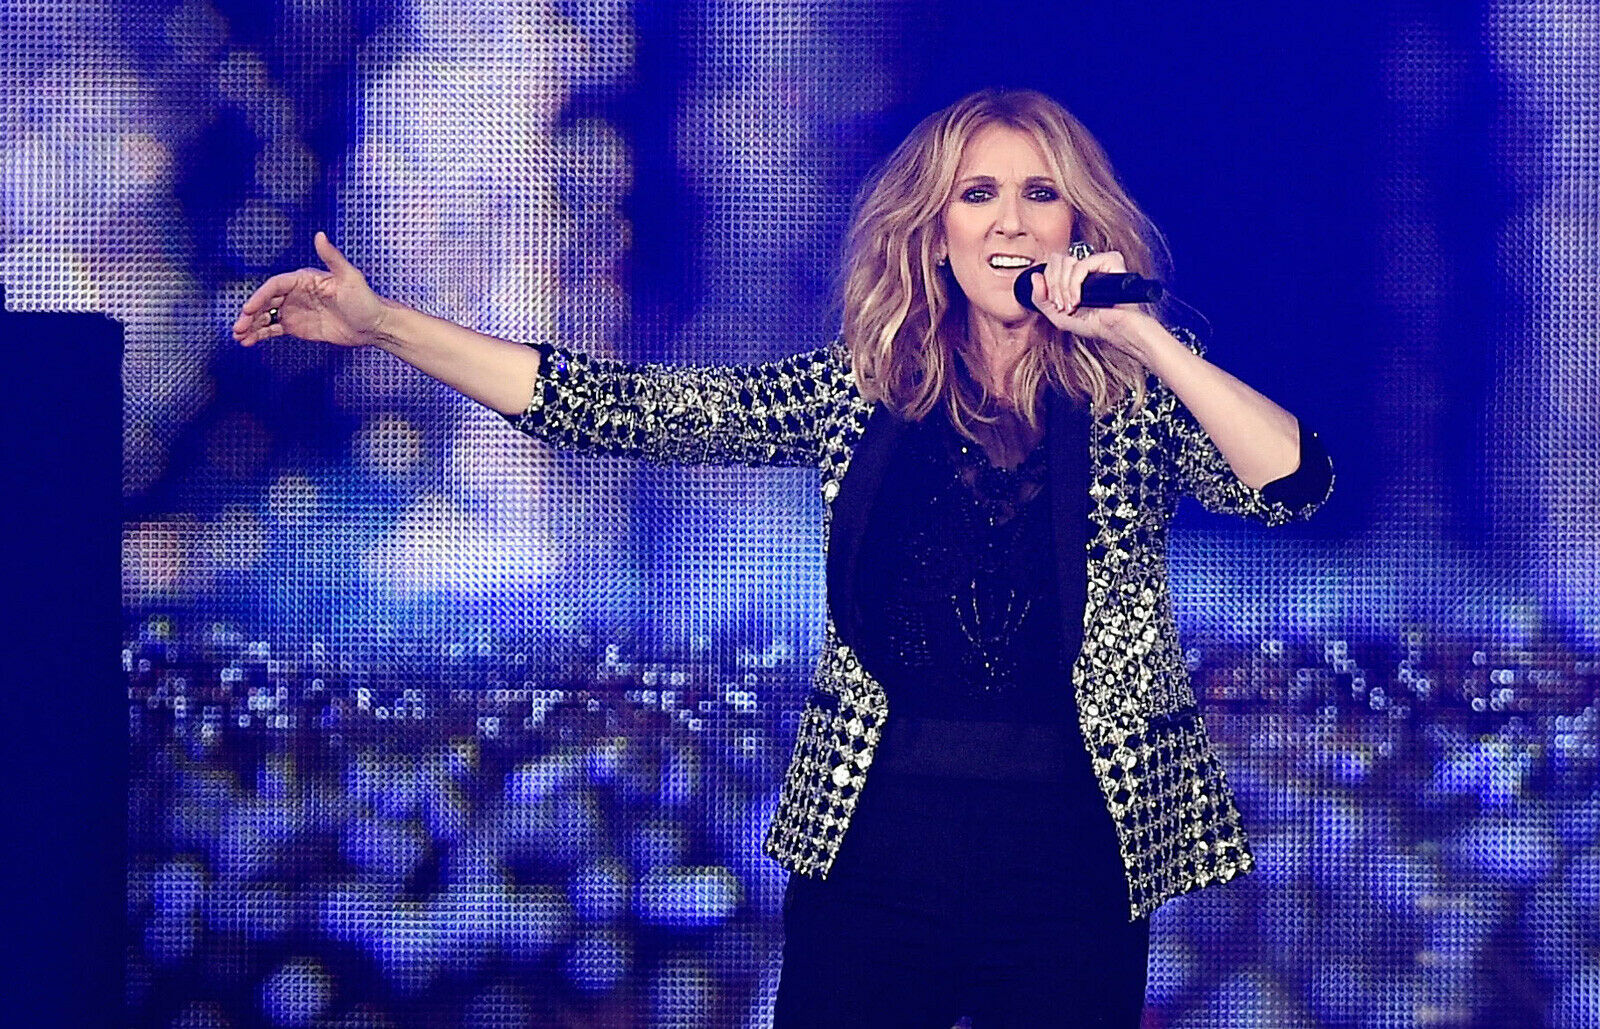 Celine Dion Tour Vip Packages Tickets 10 26 2019 At